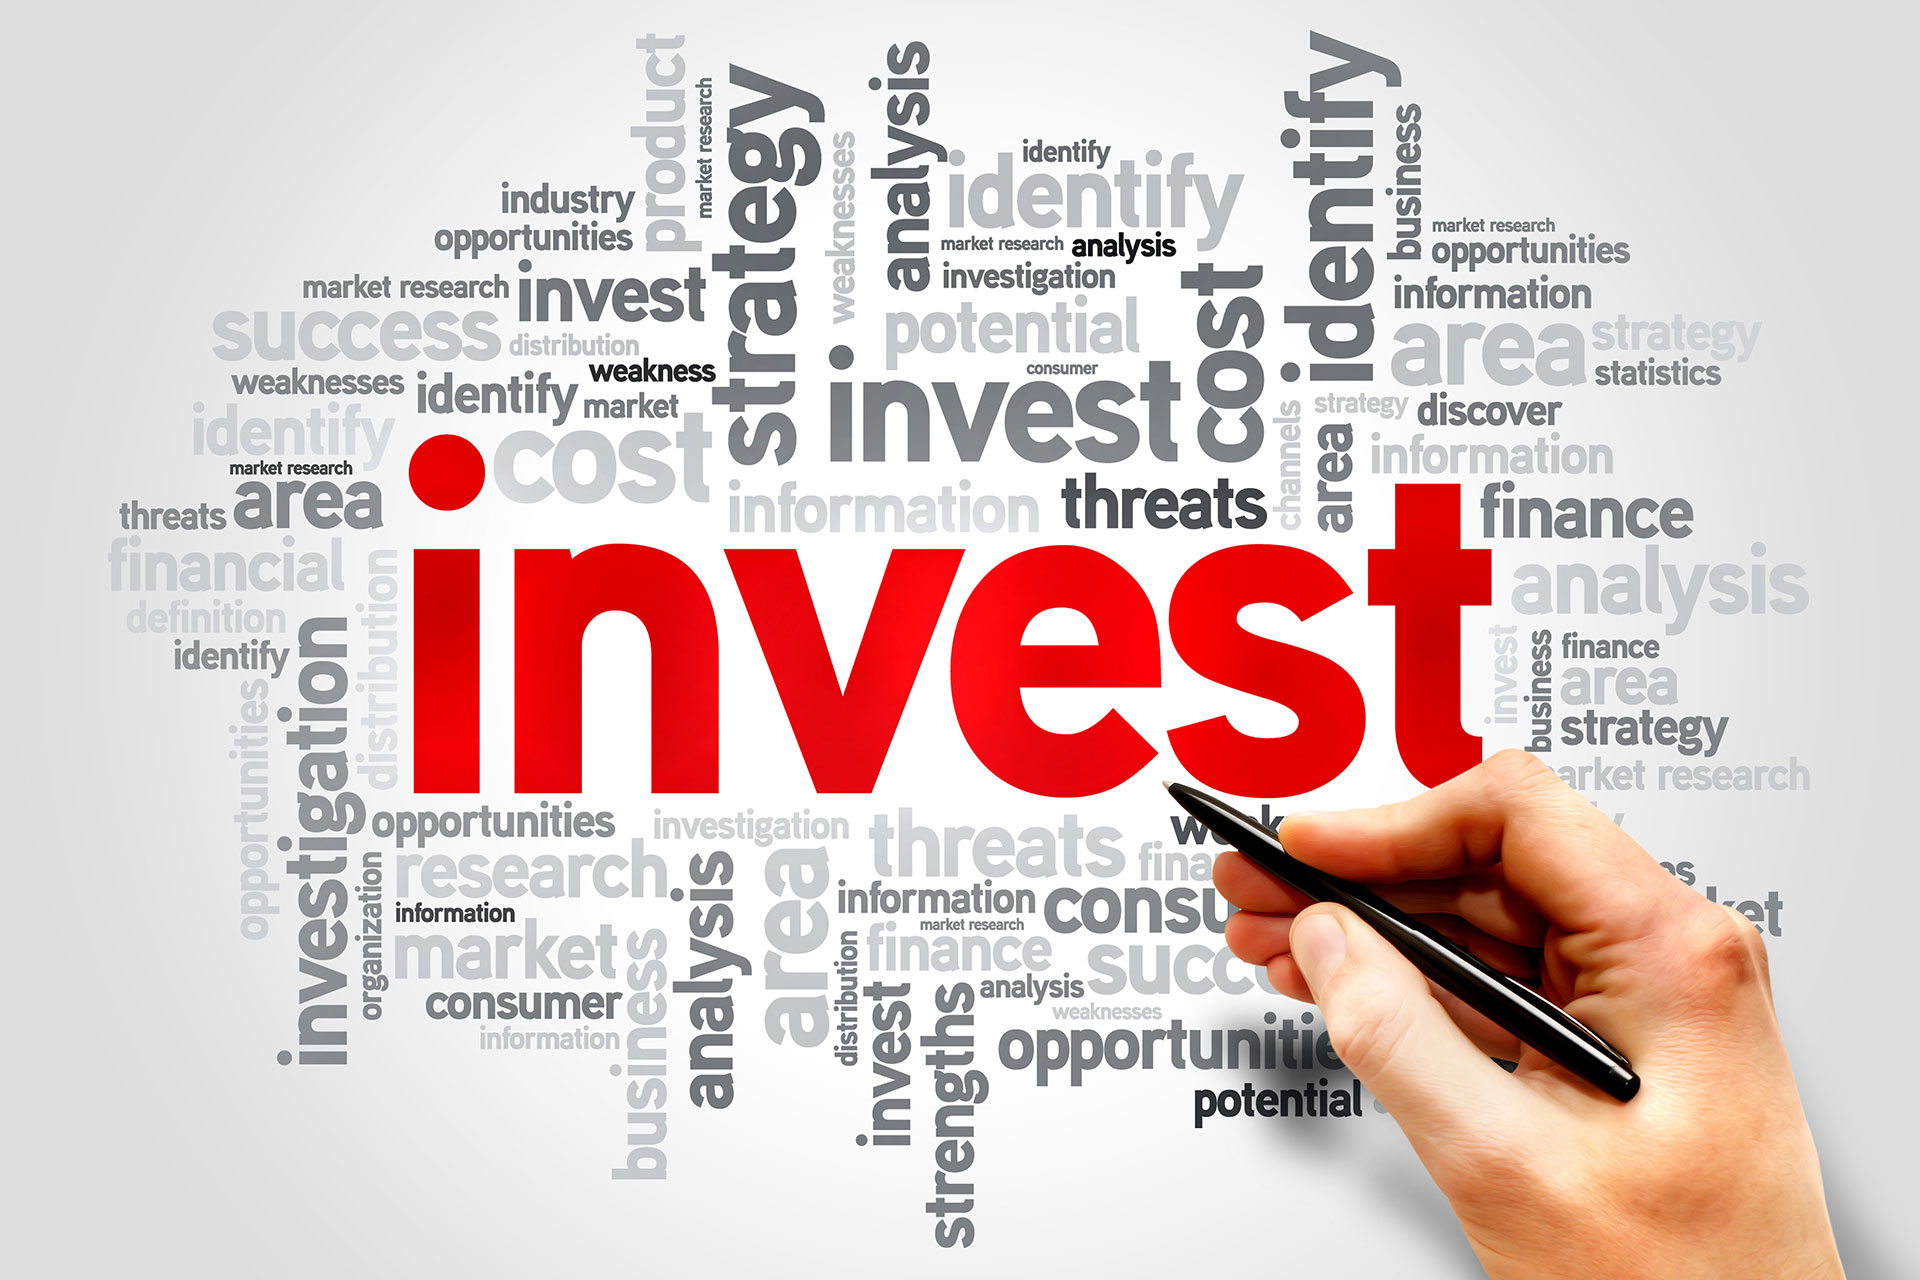 Commercial Property Investment Business Plan